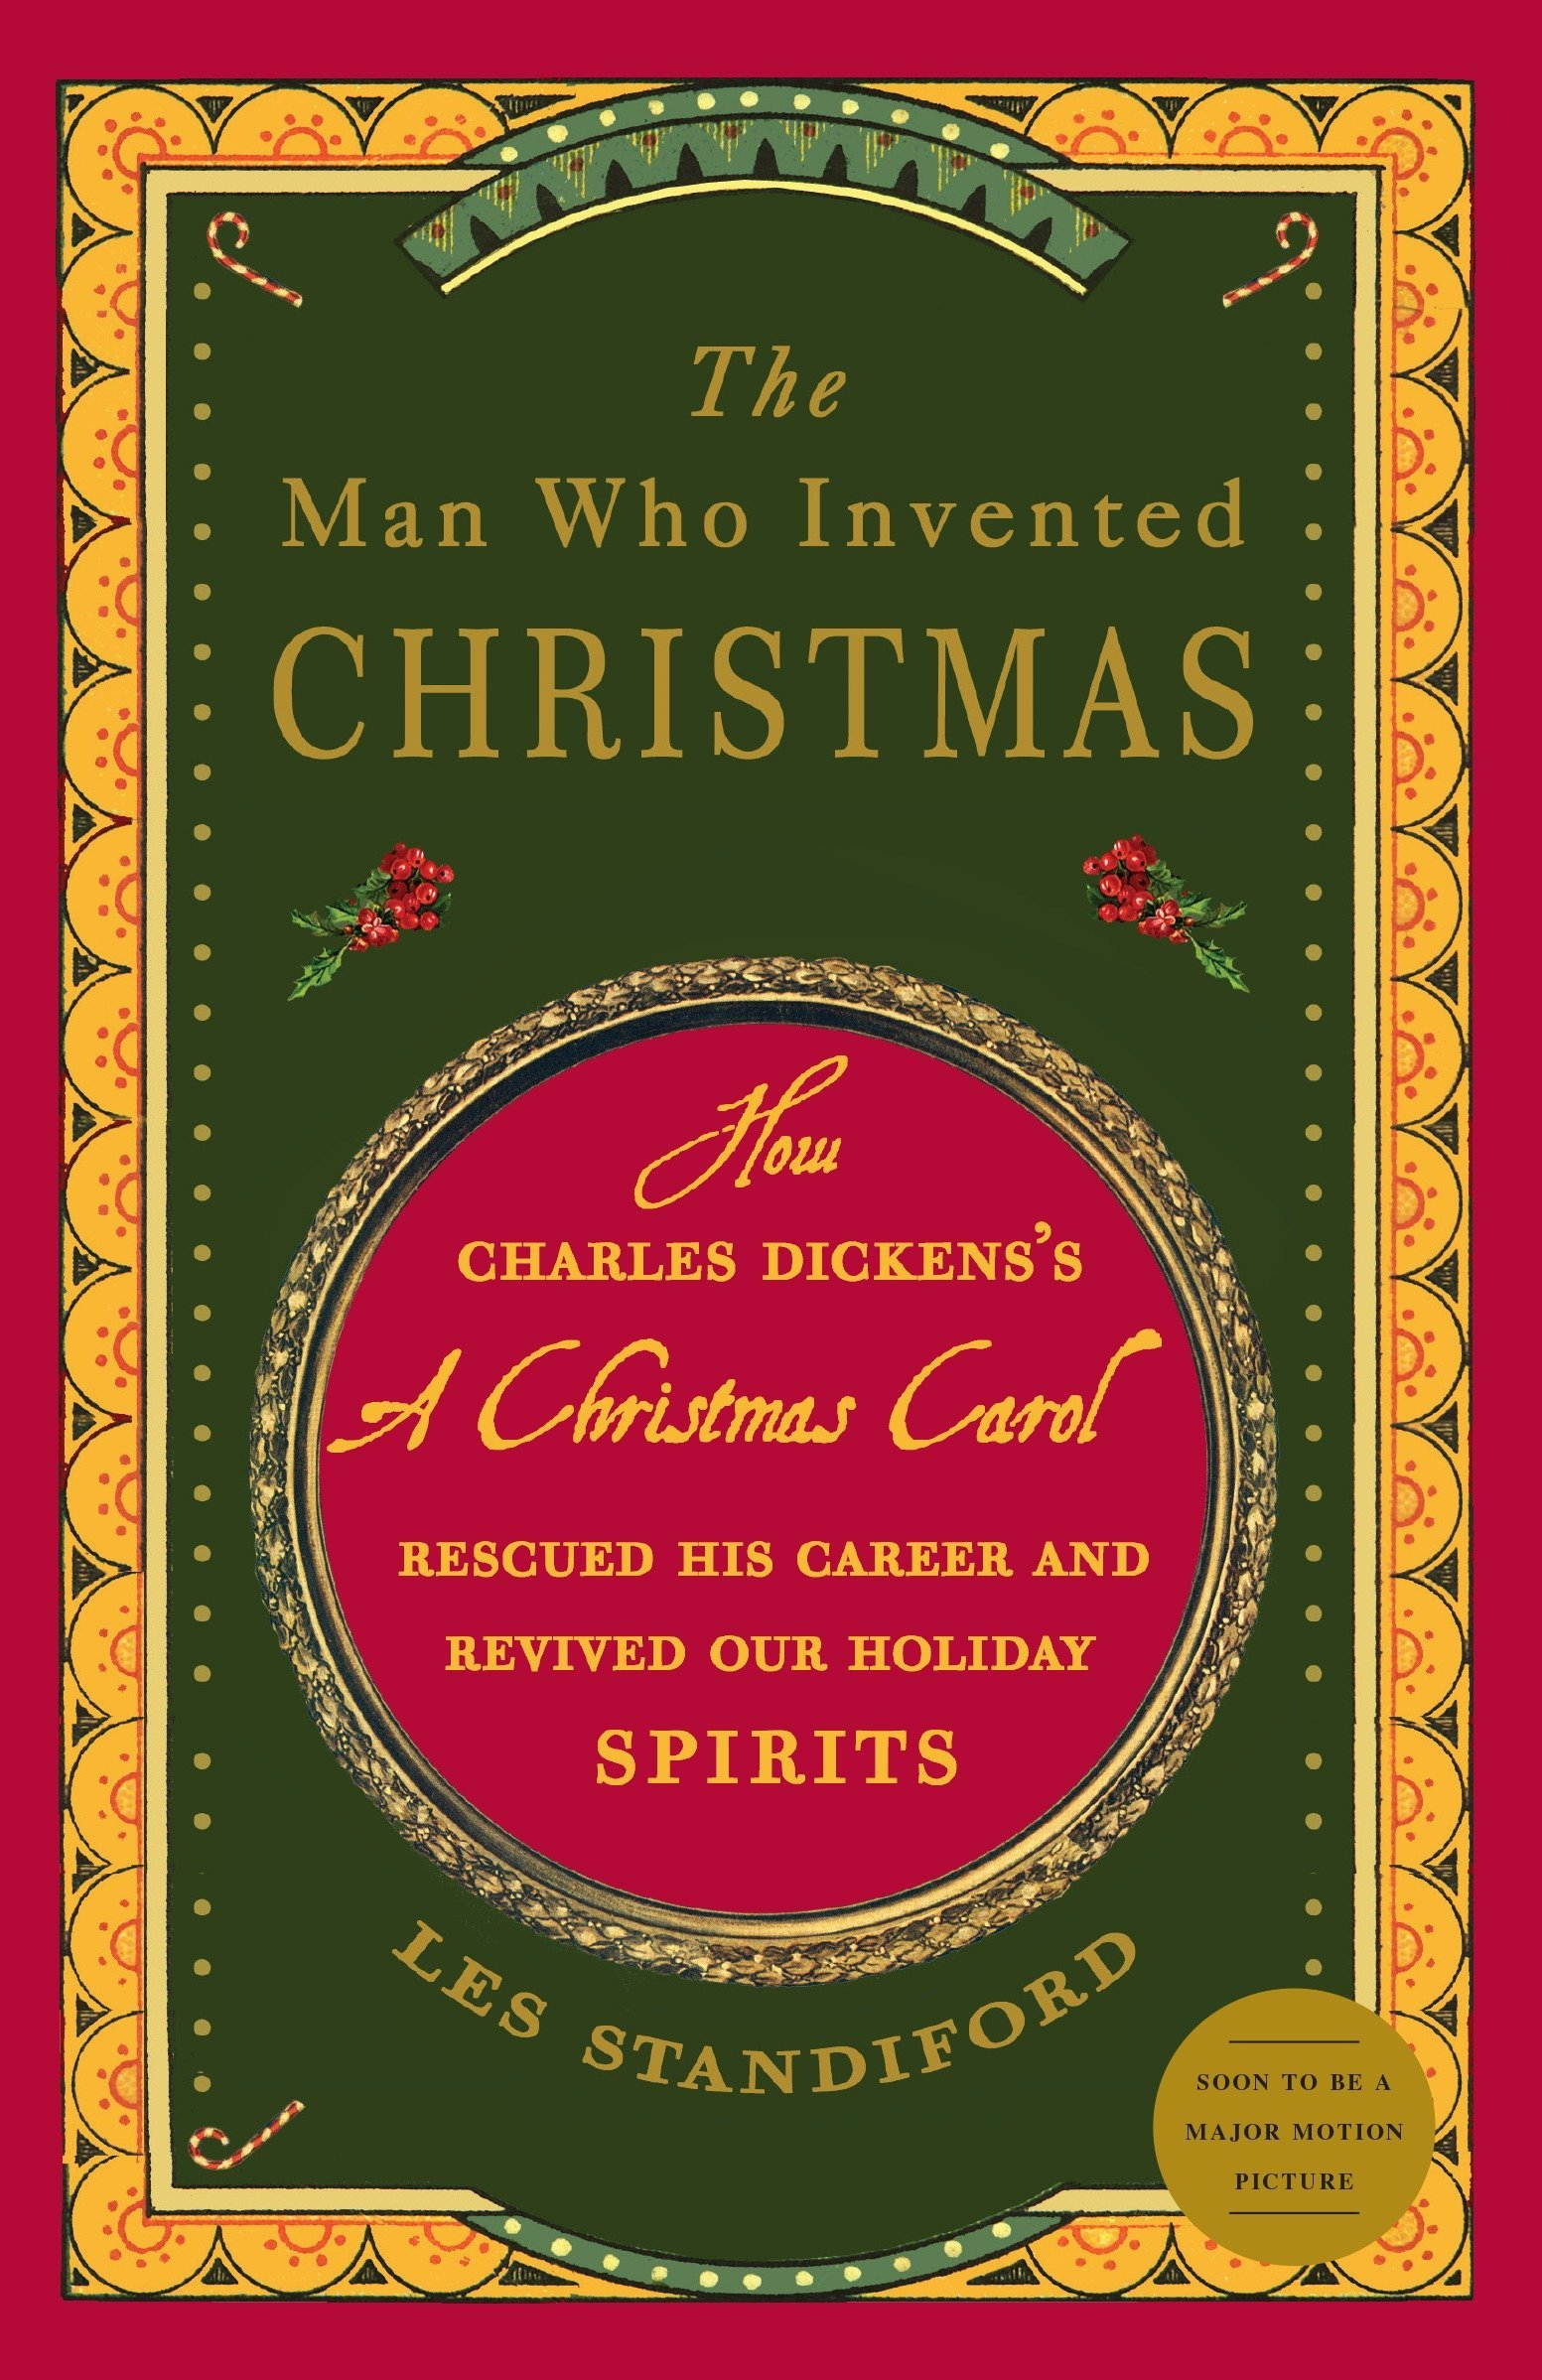 man who invented christmas.jpg